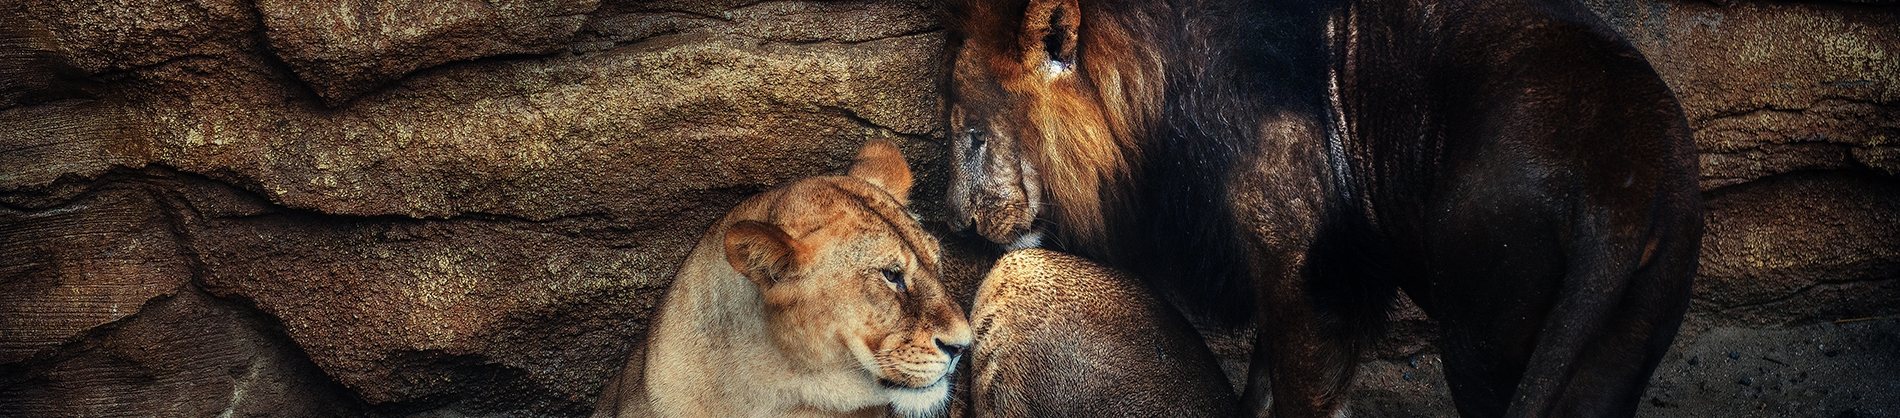 A lion and lioness together in a cave